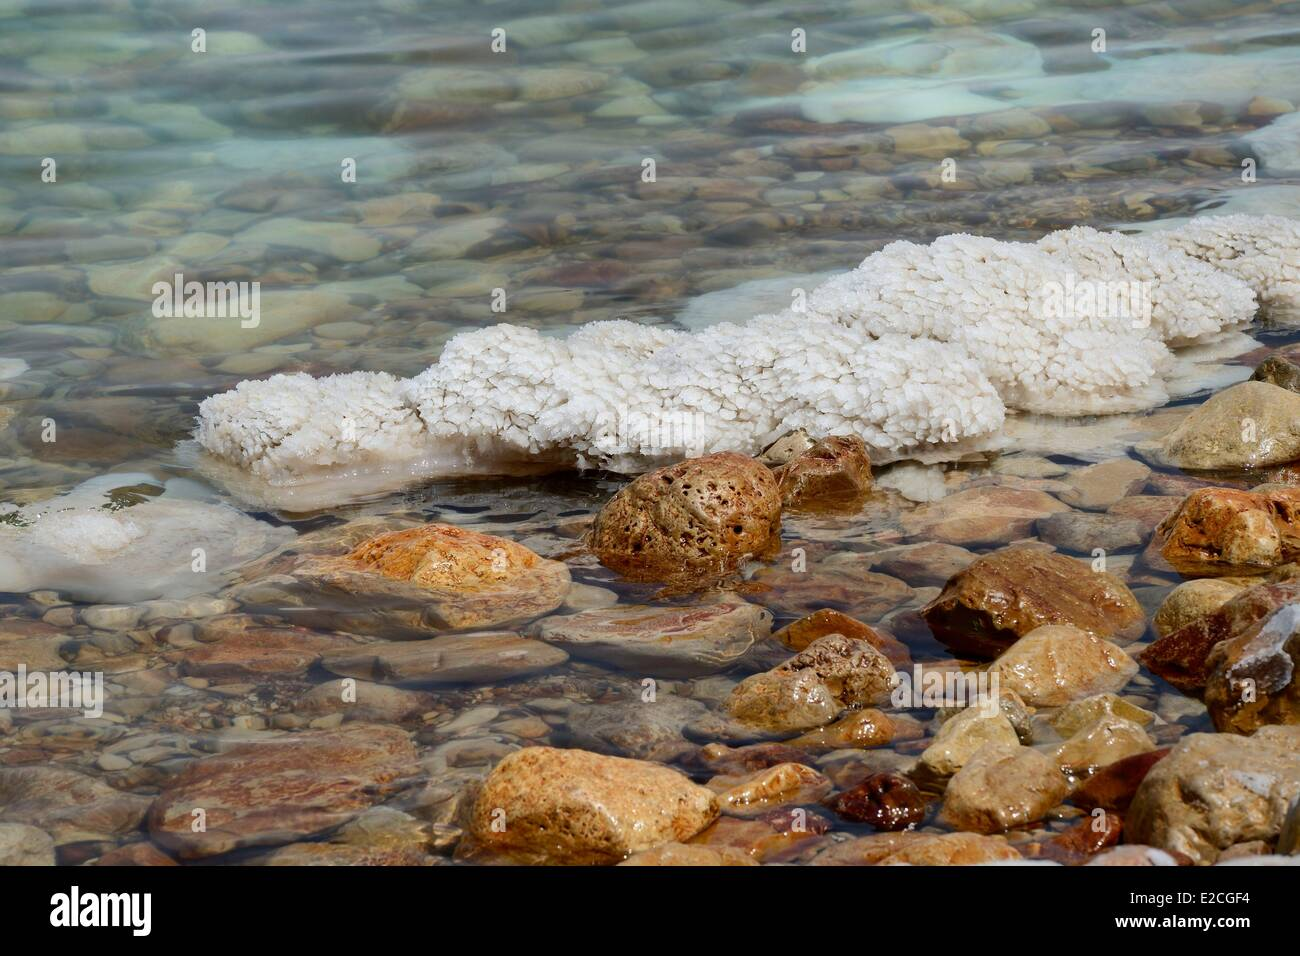 Israel, Southern district, Ein Gedi Beach on the Dead Sea, saline concretions - Stock Image